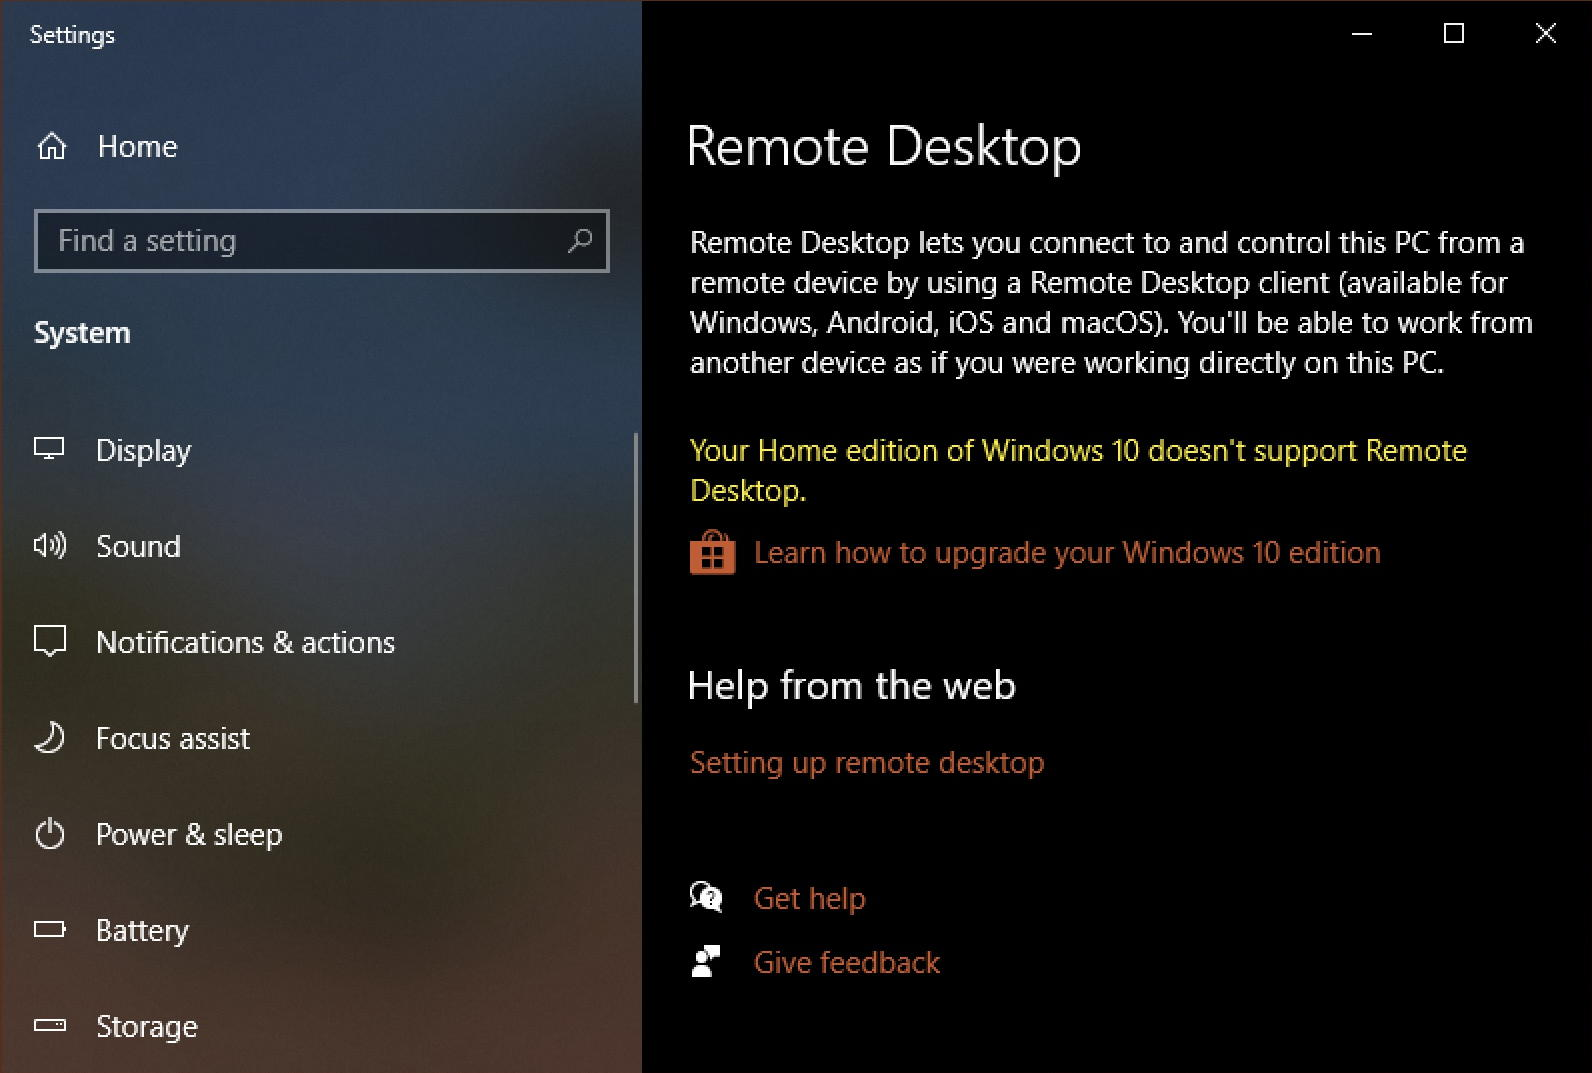 windows 10 pc - remote desktop - disabled home edition win10